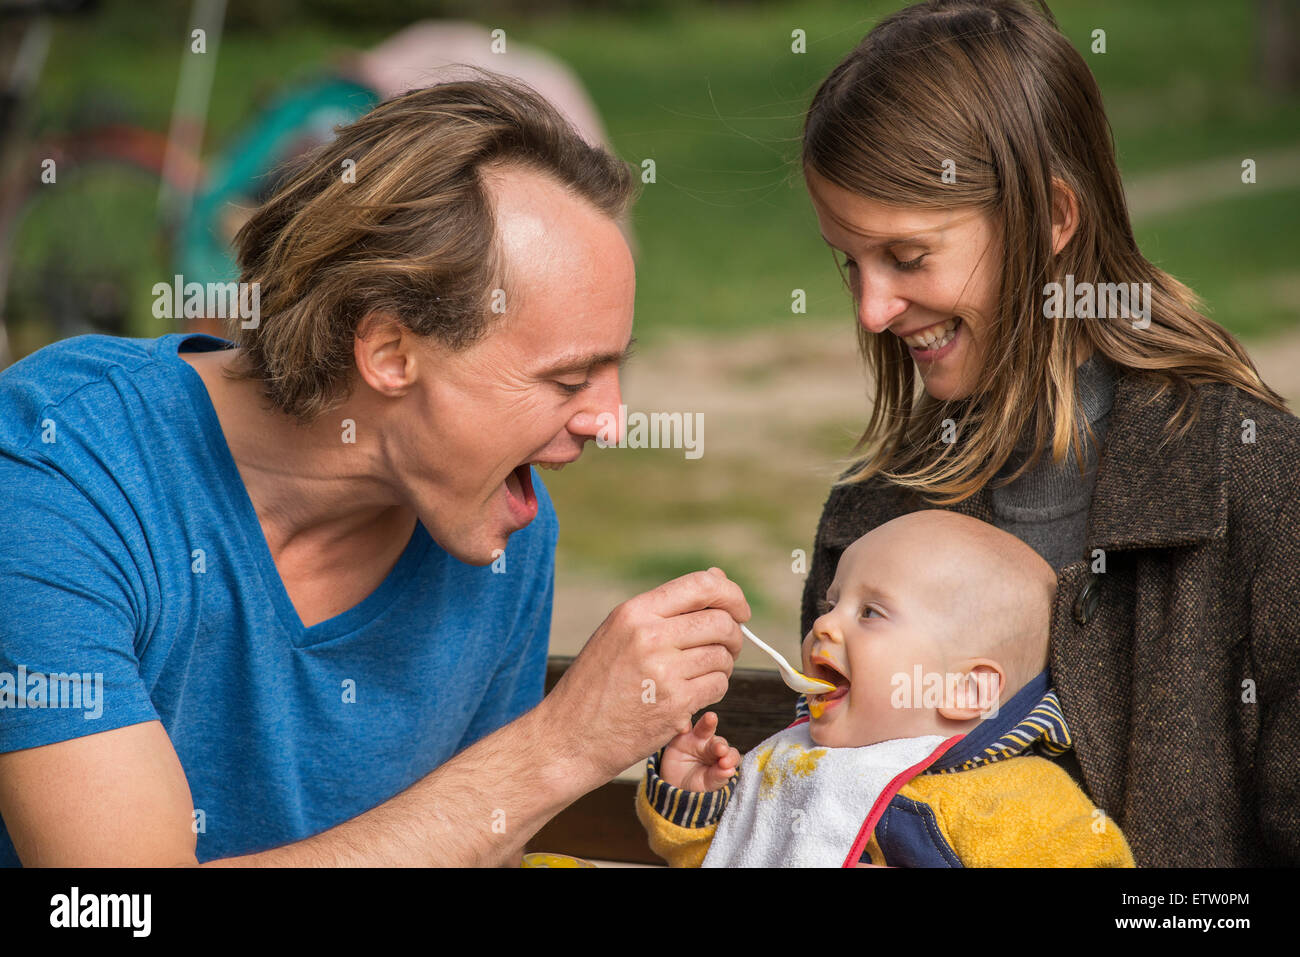 Man feeding his little son - Stock Image